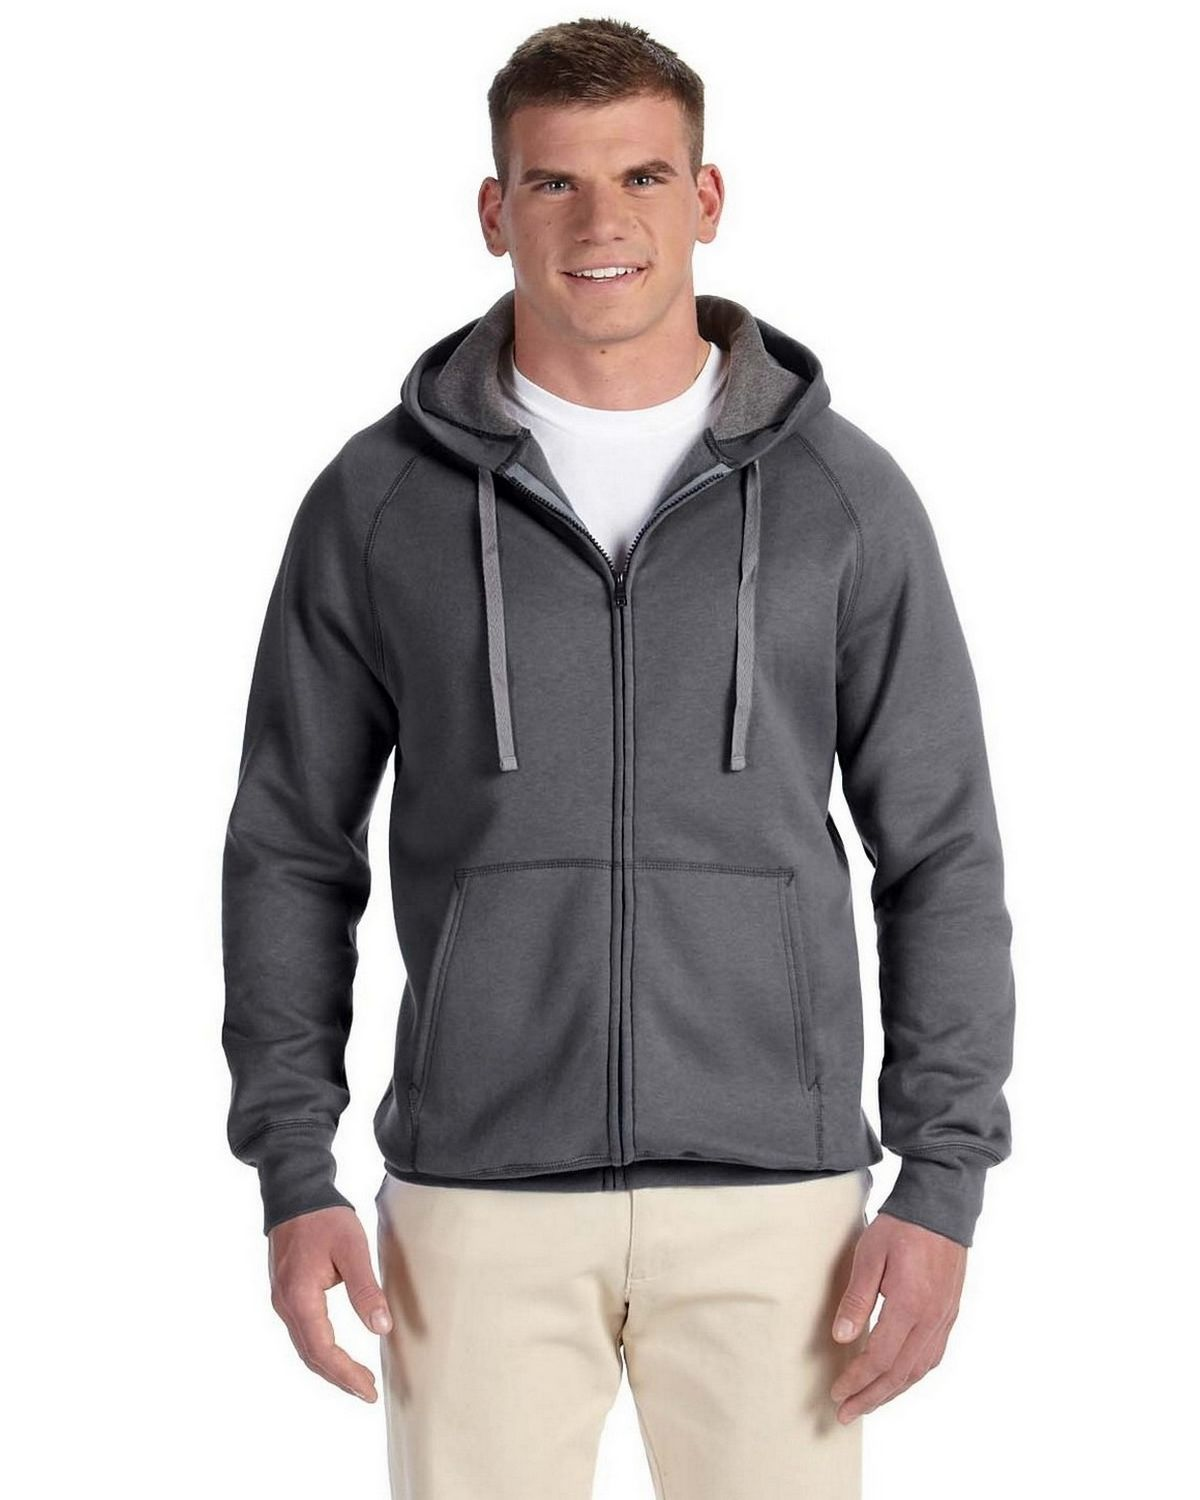 Hanes N280 Nano Full Zip Hoodie Sweatshirt - Charcoal Heather - XL N280